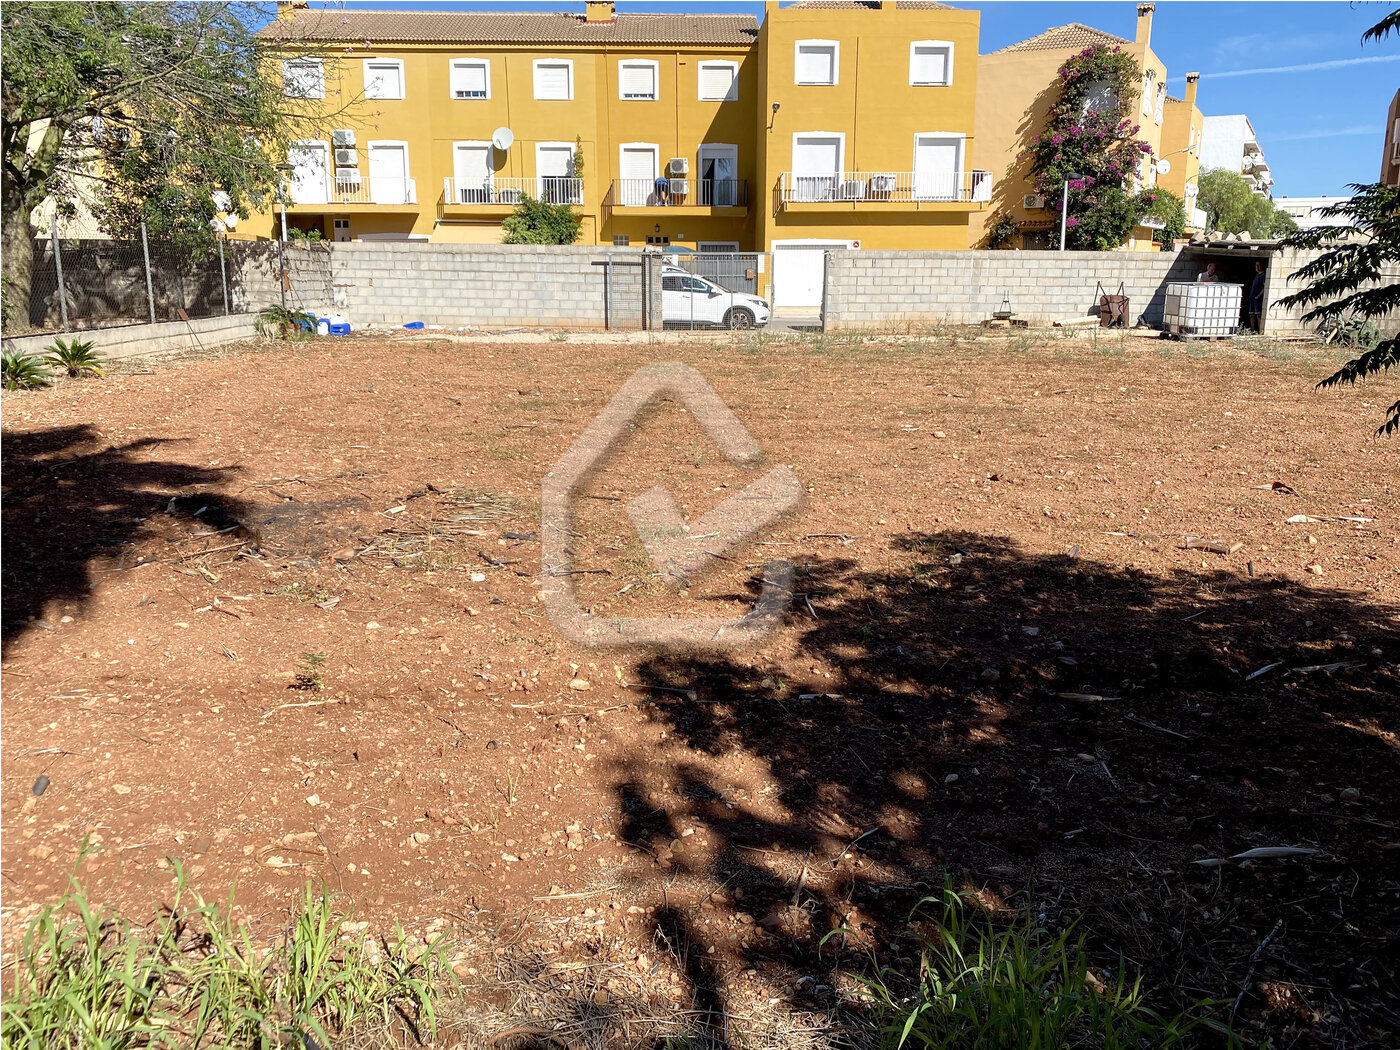 Photo  number 1: Land / Ground in Sale in Ondara, Area Centro. Ref. 5-36-14905